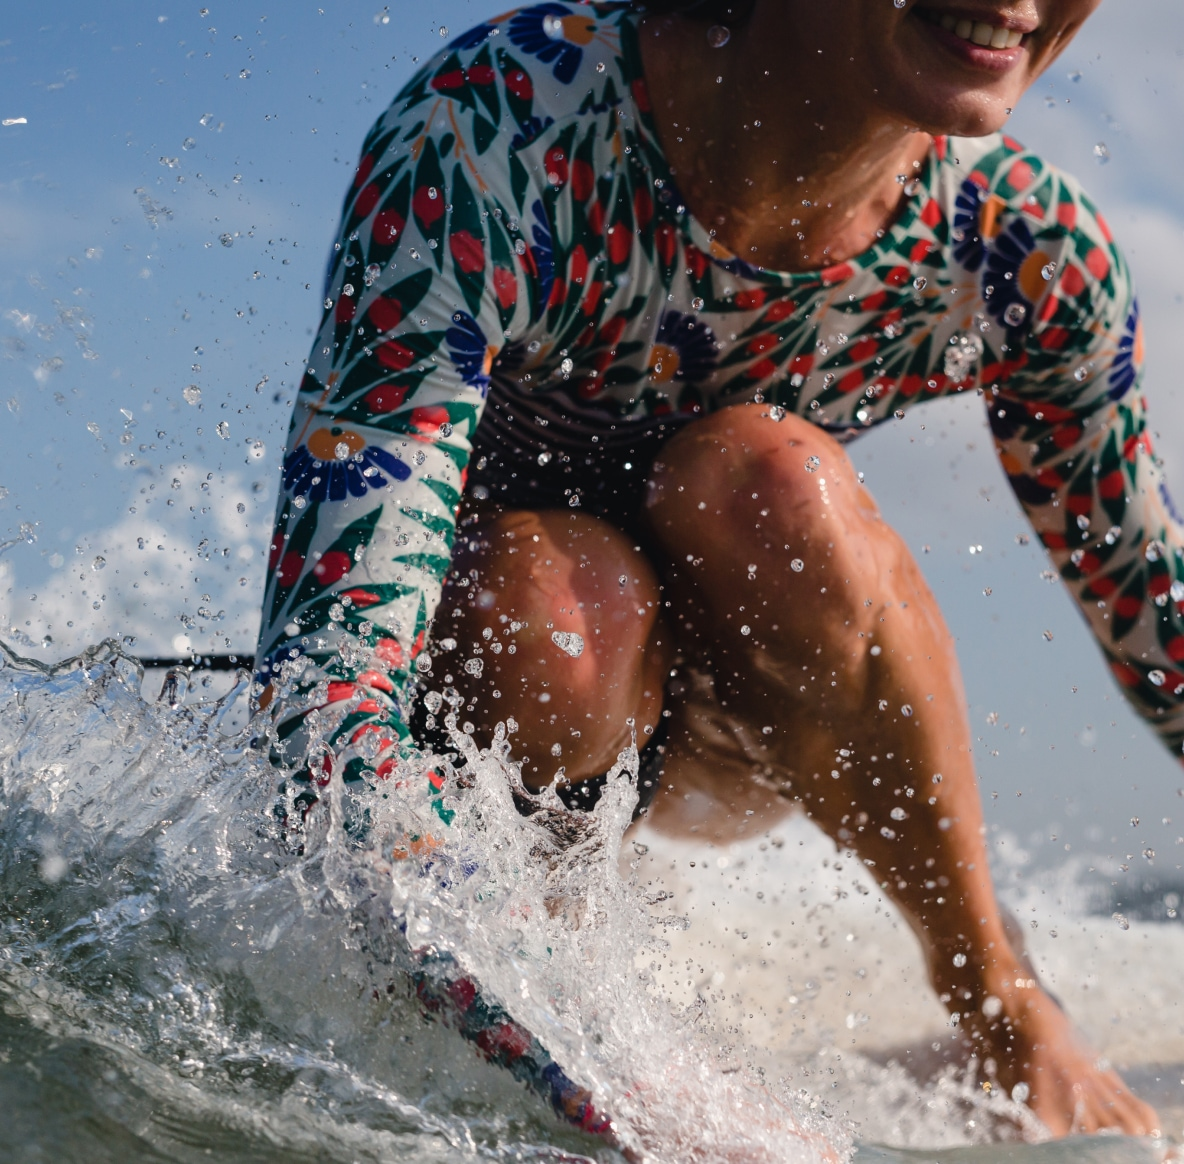 A smiling woman in a floral swim top ride a surfboard